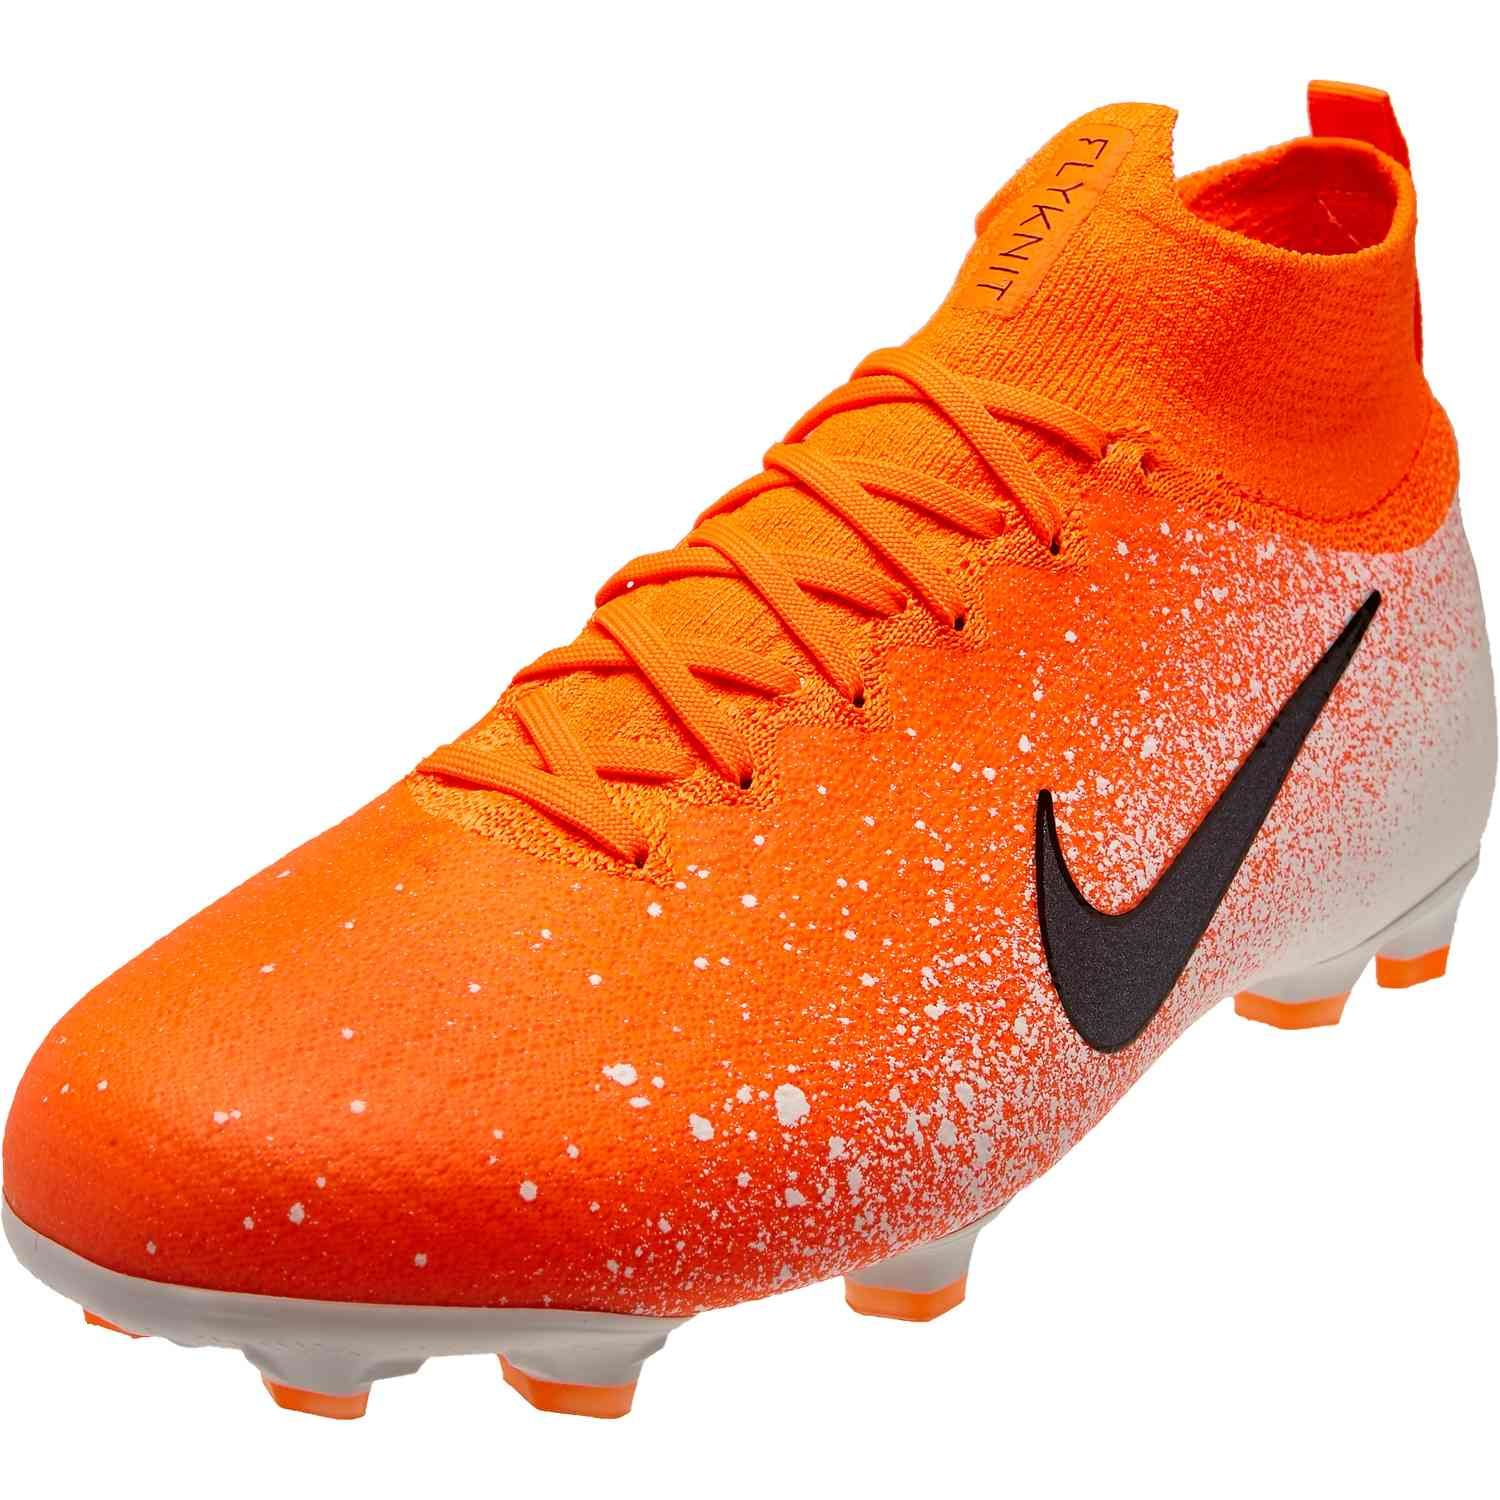 Kids Nike Mercurial Superfly 6 Elite Fg Euphoria Pack Youth Soccer Shoes Nike Shoes Girls Kids Kids Soccer Shoes